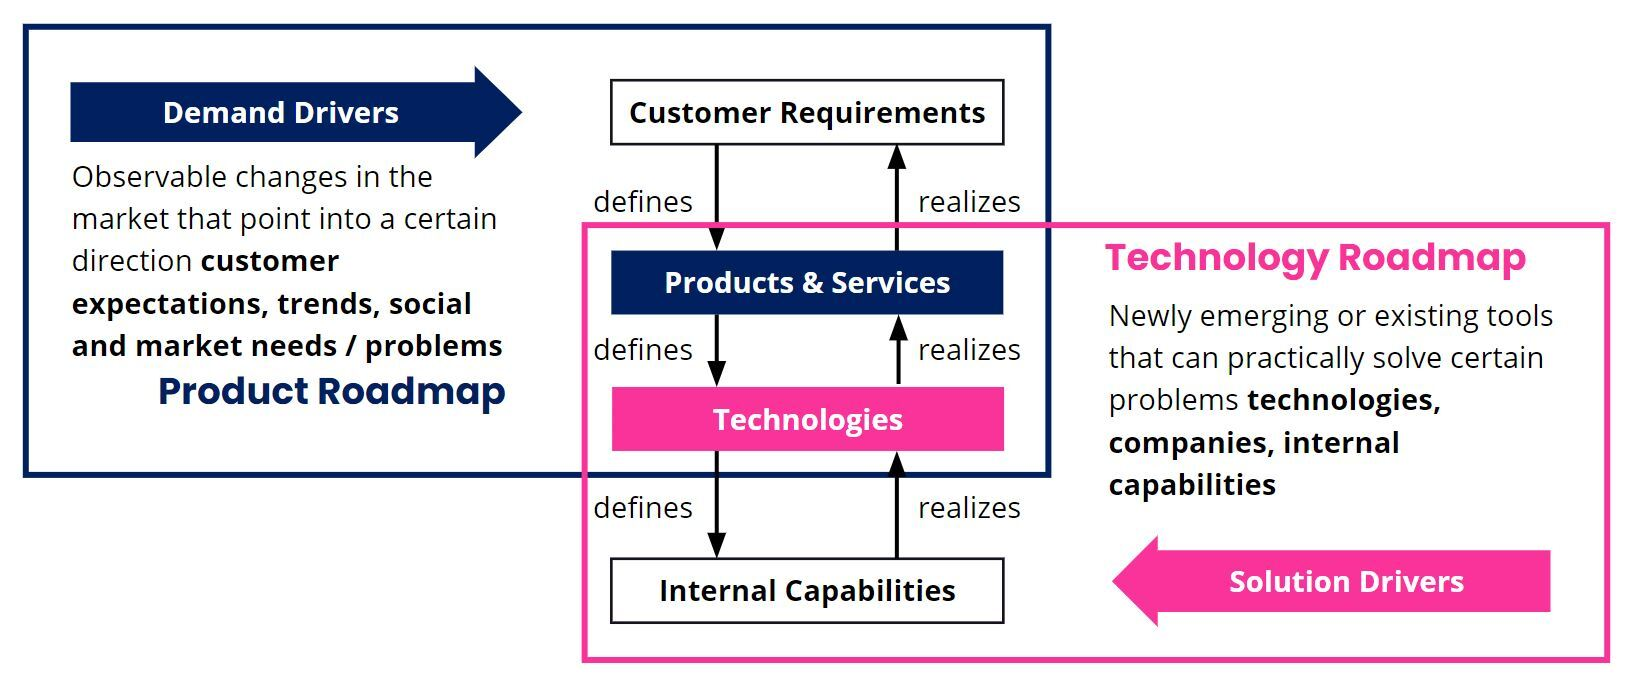 Demand and Solution Drivers in Innovation